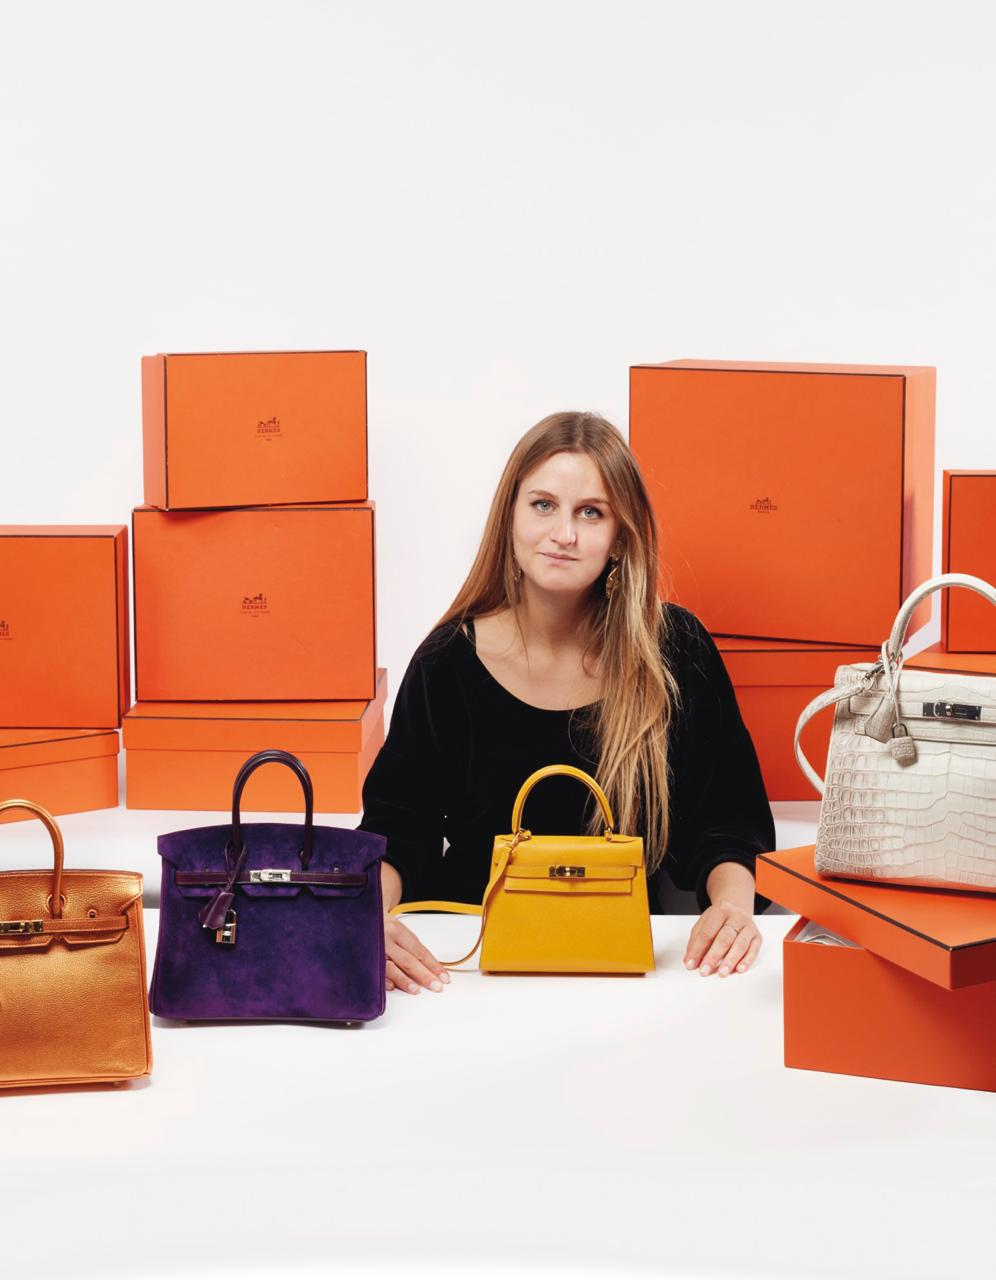 Lucile Andreani, Handbags & Accessories Associate Apecialist at Christie's